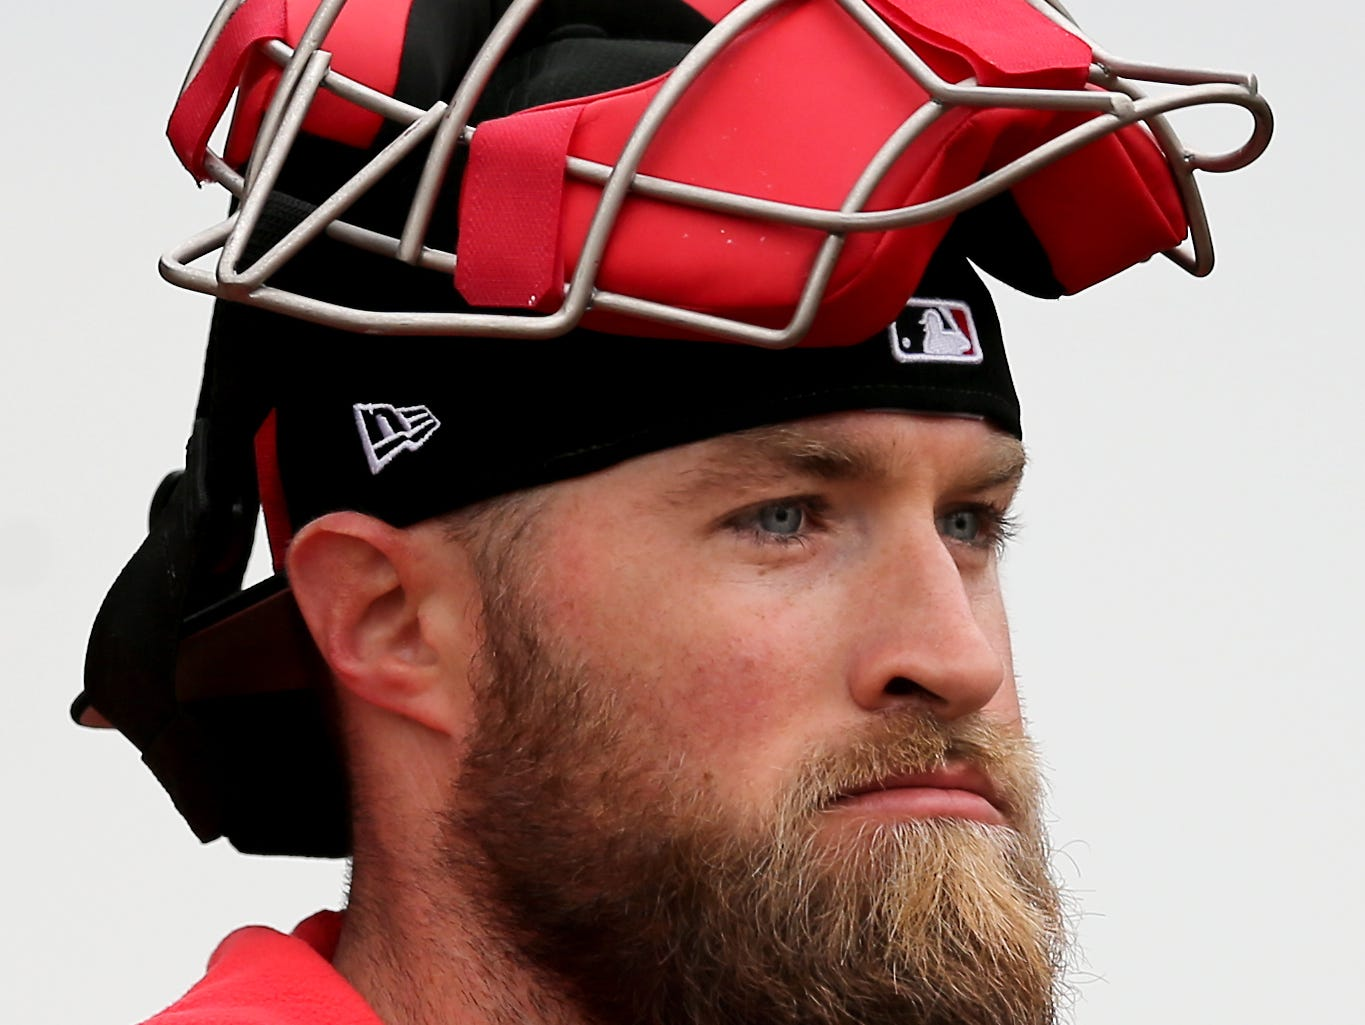 Cincinnati Reds catcher Tucker Barnhart (16) walks friom the bullpen, Thursday, Feb. 14, 2019, at the Cincinnati Reds spring training facility in Goodyear, Arizona.